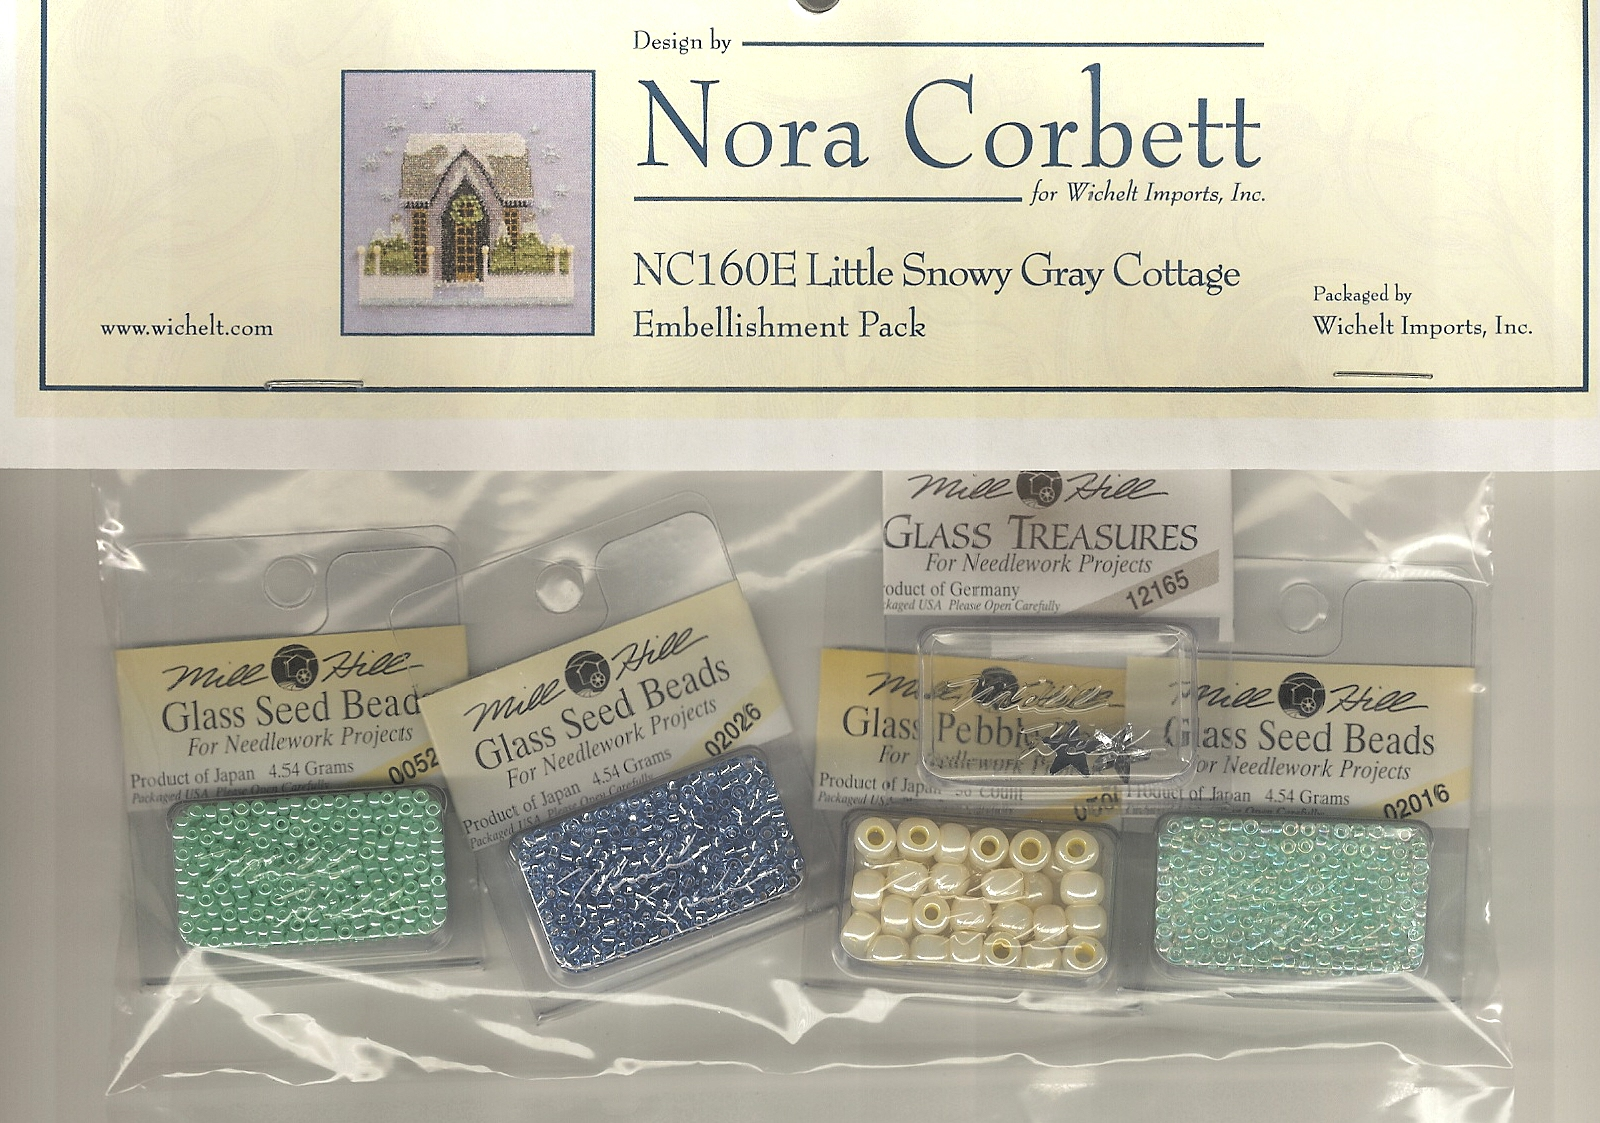 Mill Hill - Nora Corbett - Snow Globe Village Series Embellishment Pack for Little Snowy Gray Cottage-Mill Hill, Nora Corbett Snow Globe Village Series Embellishment Pack Little Snowy Gray Cottage beads NC160e